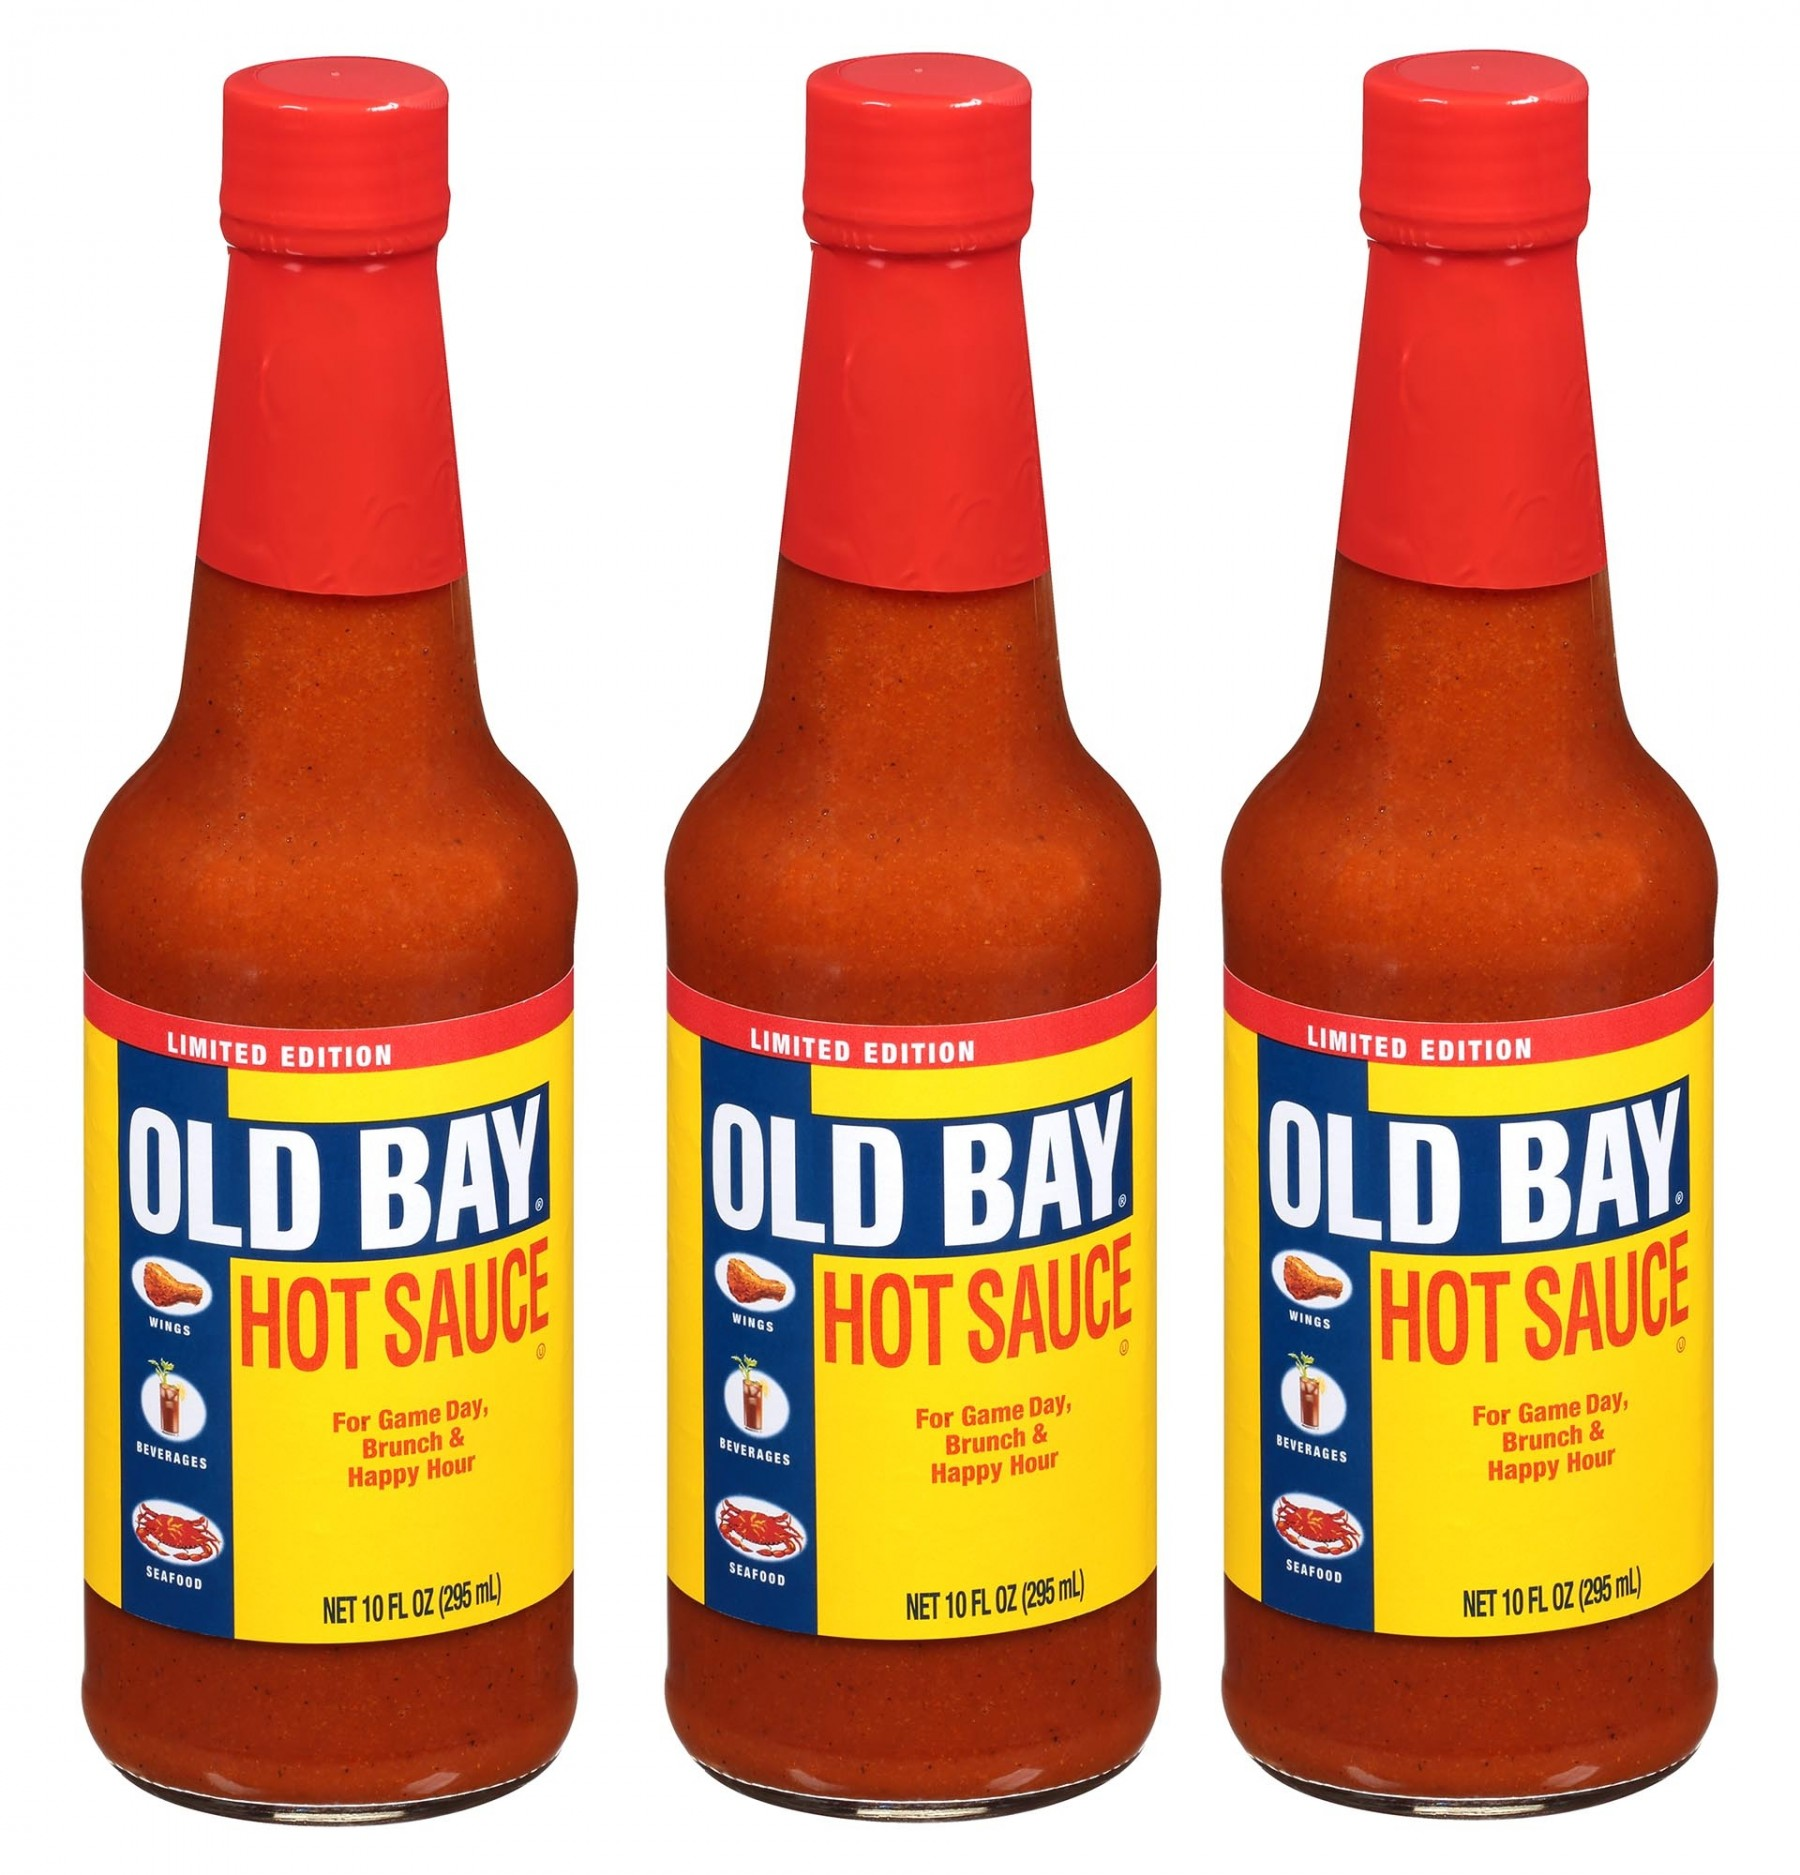 Old Bay Hot Sauce